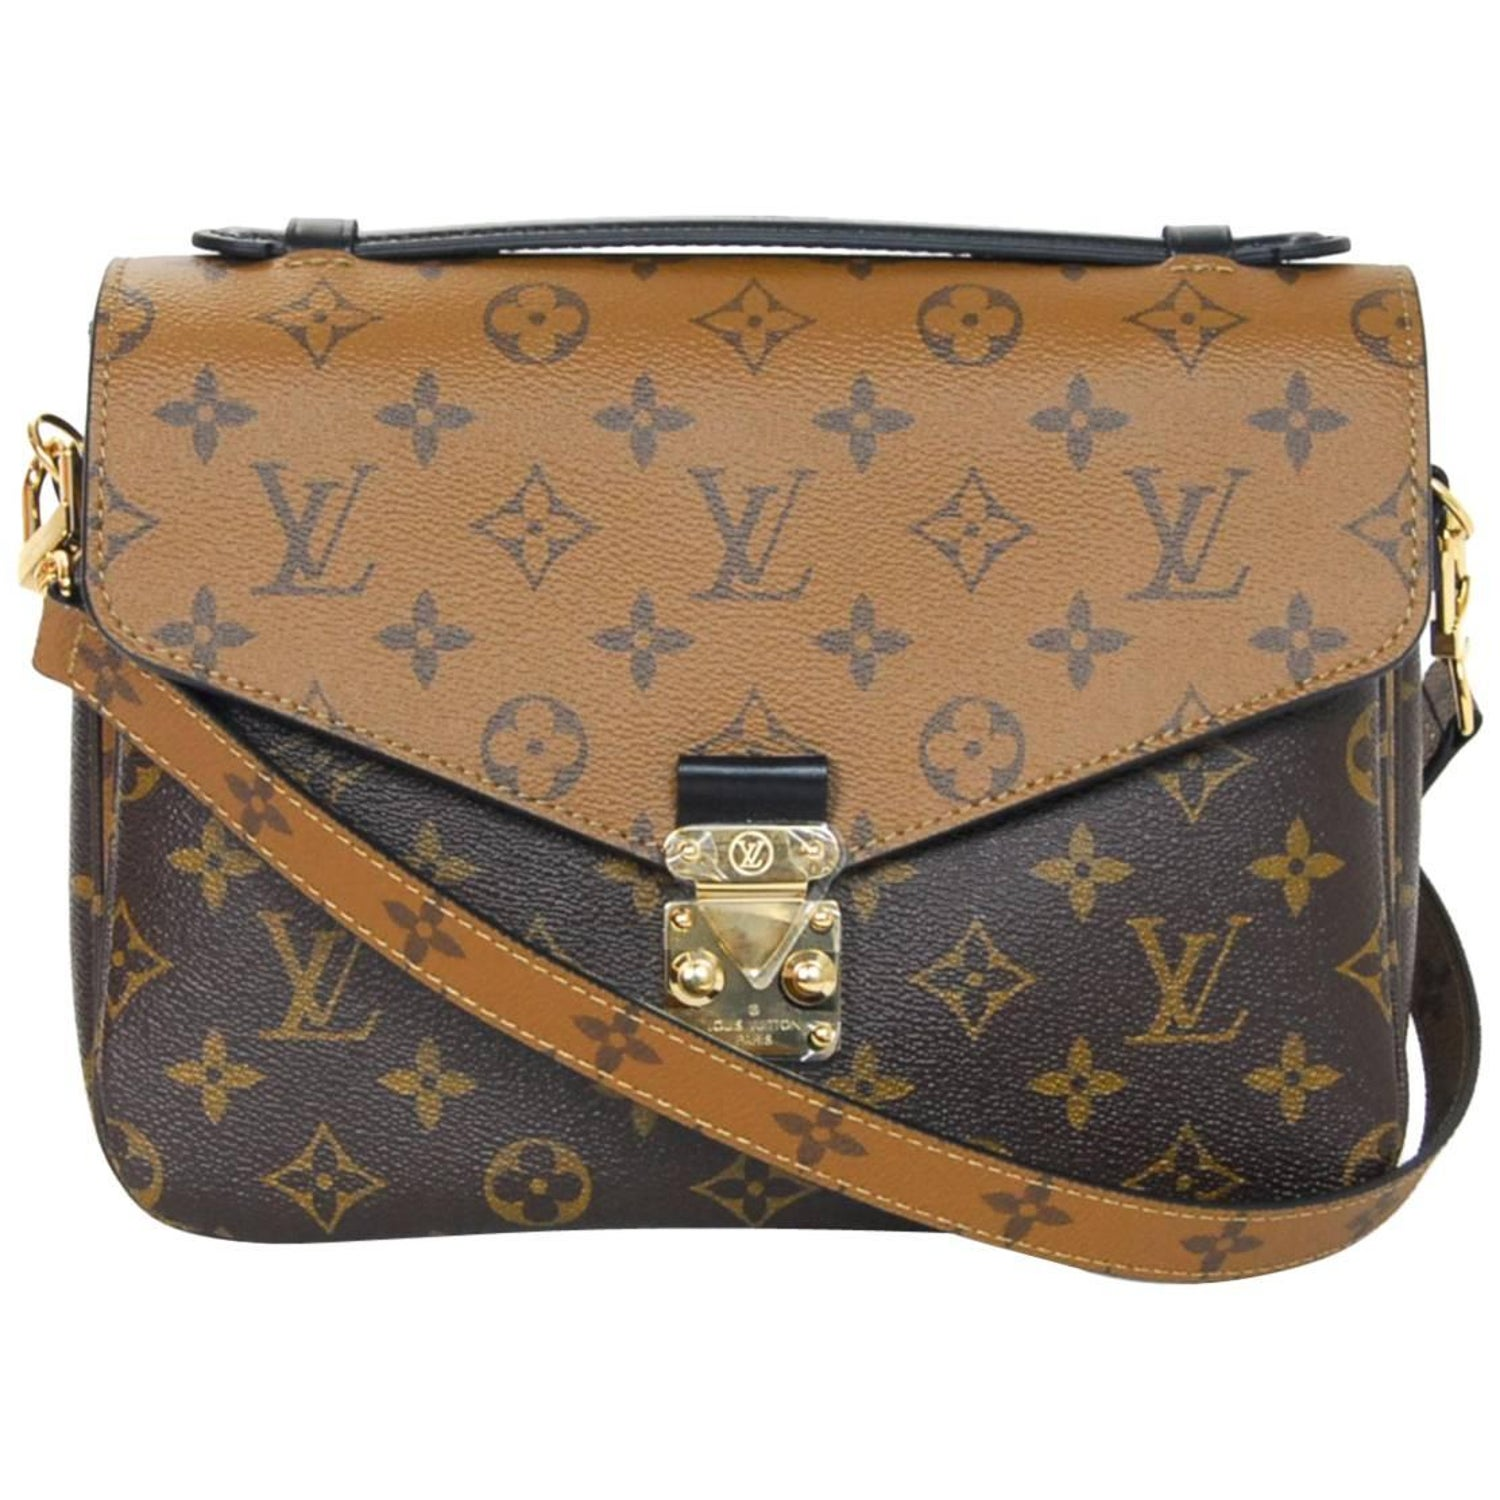 8ad7164b0356 Louis Vuitton SOLD OUT Reverse Monogram Metis Pochette Crossbody Bag  BX Receipt For Sale at 1stdibs